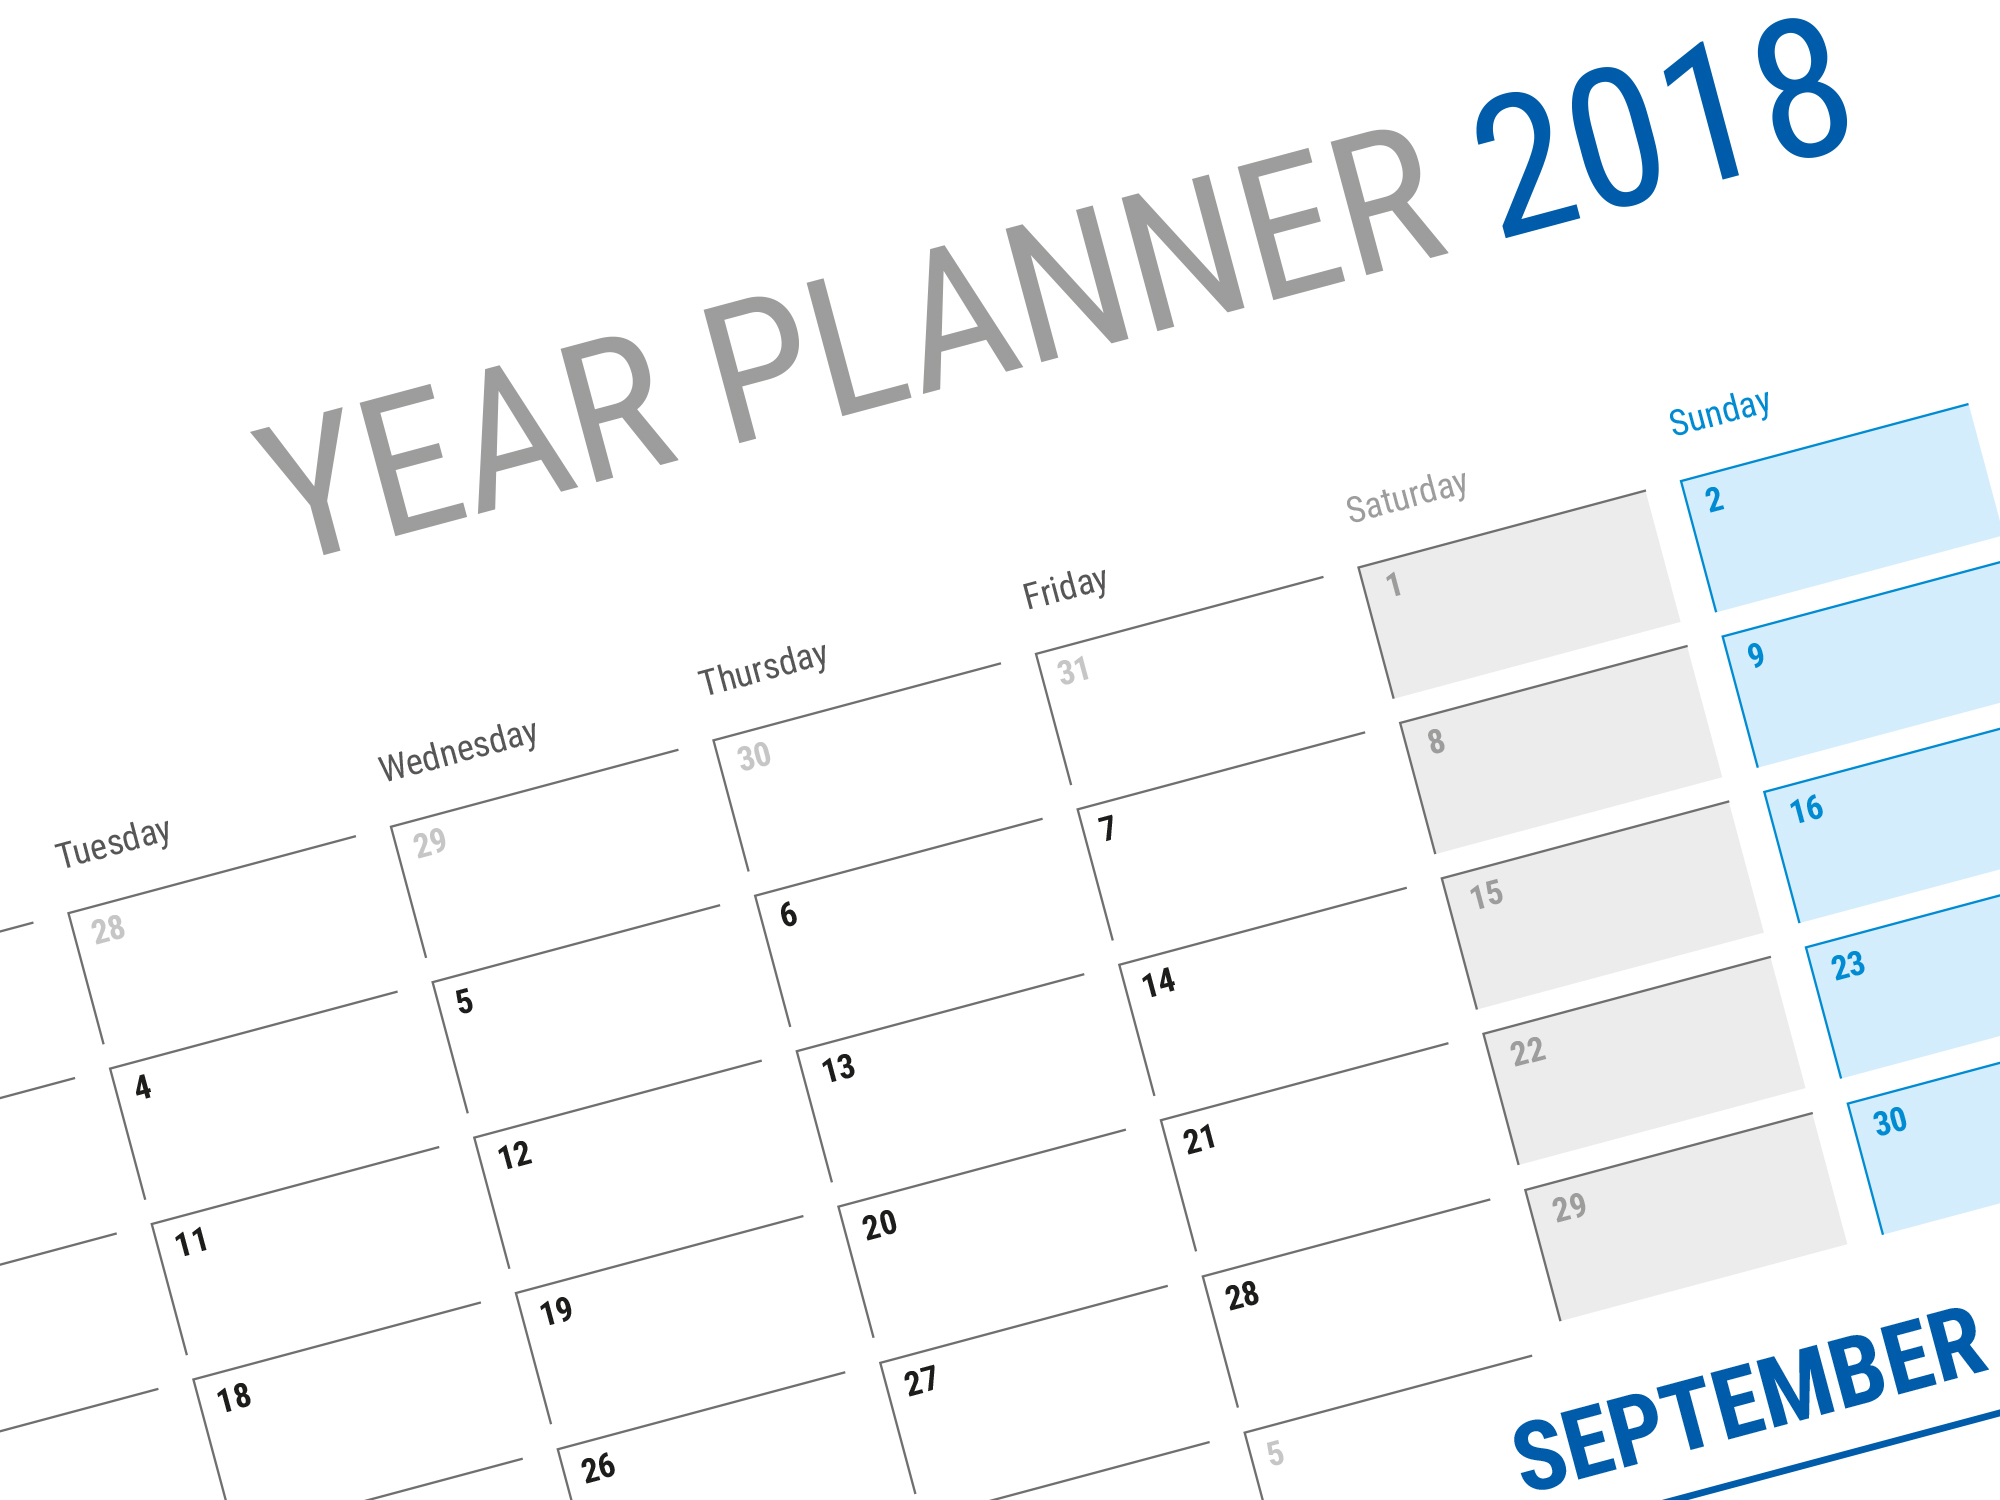 Calendar Planner Template : Large horizontal blank calendar template for year